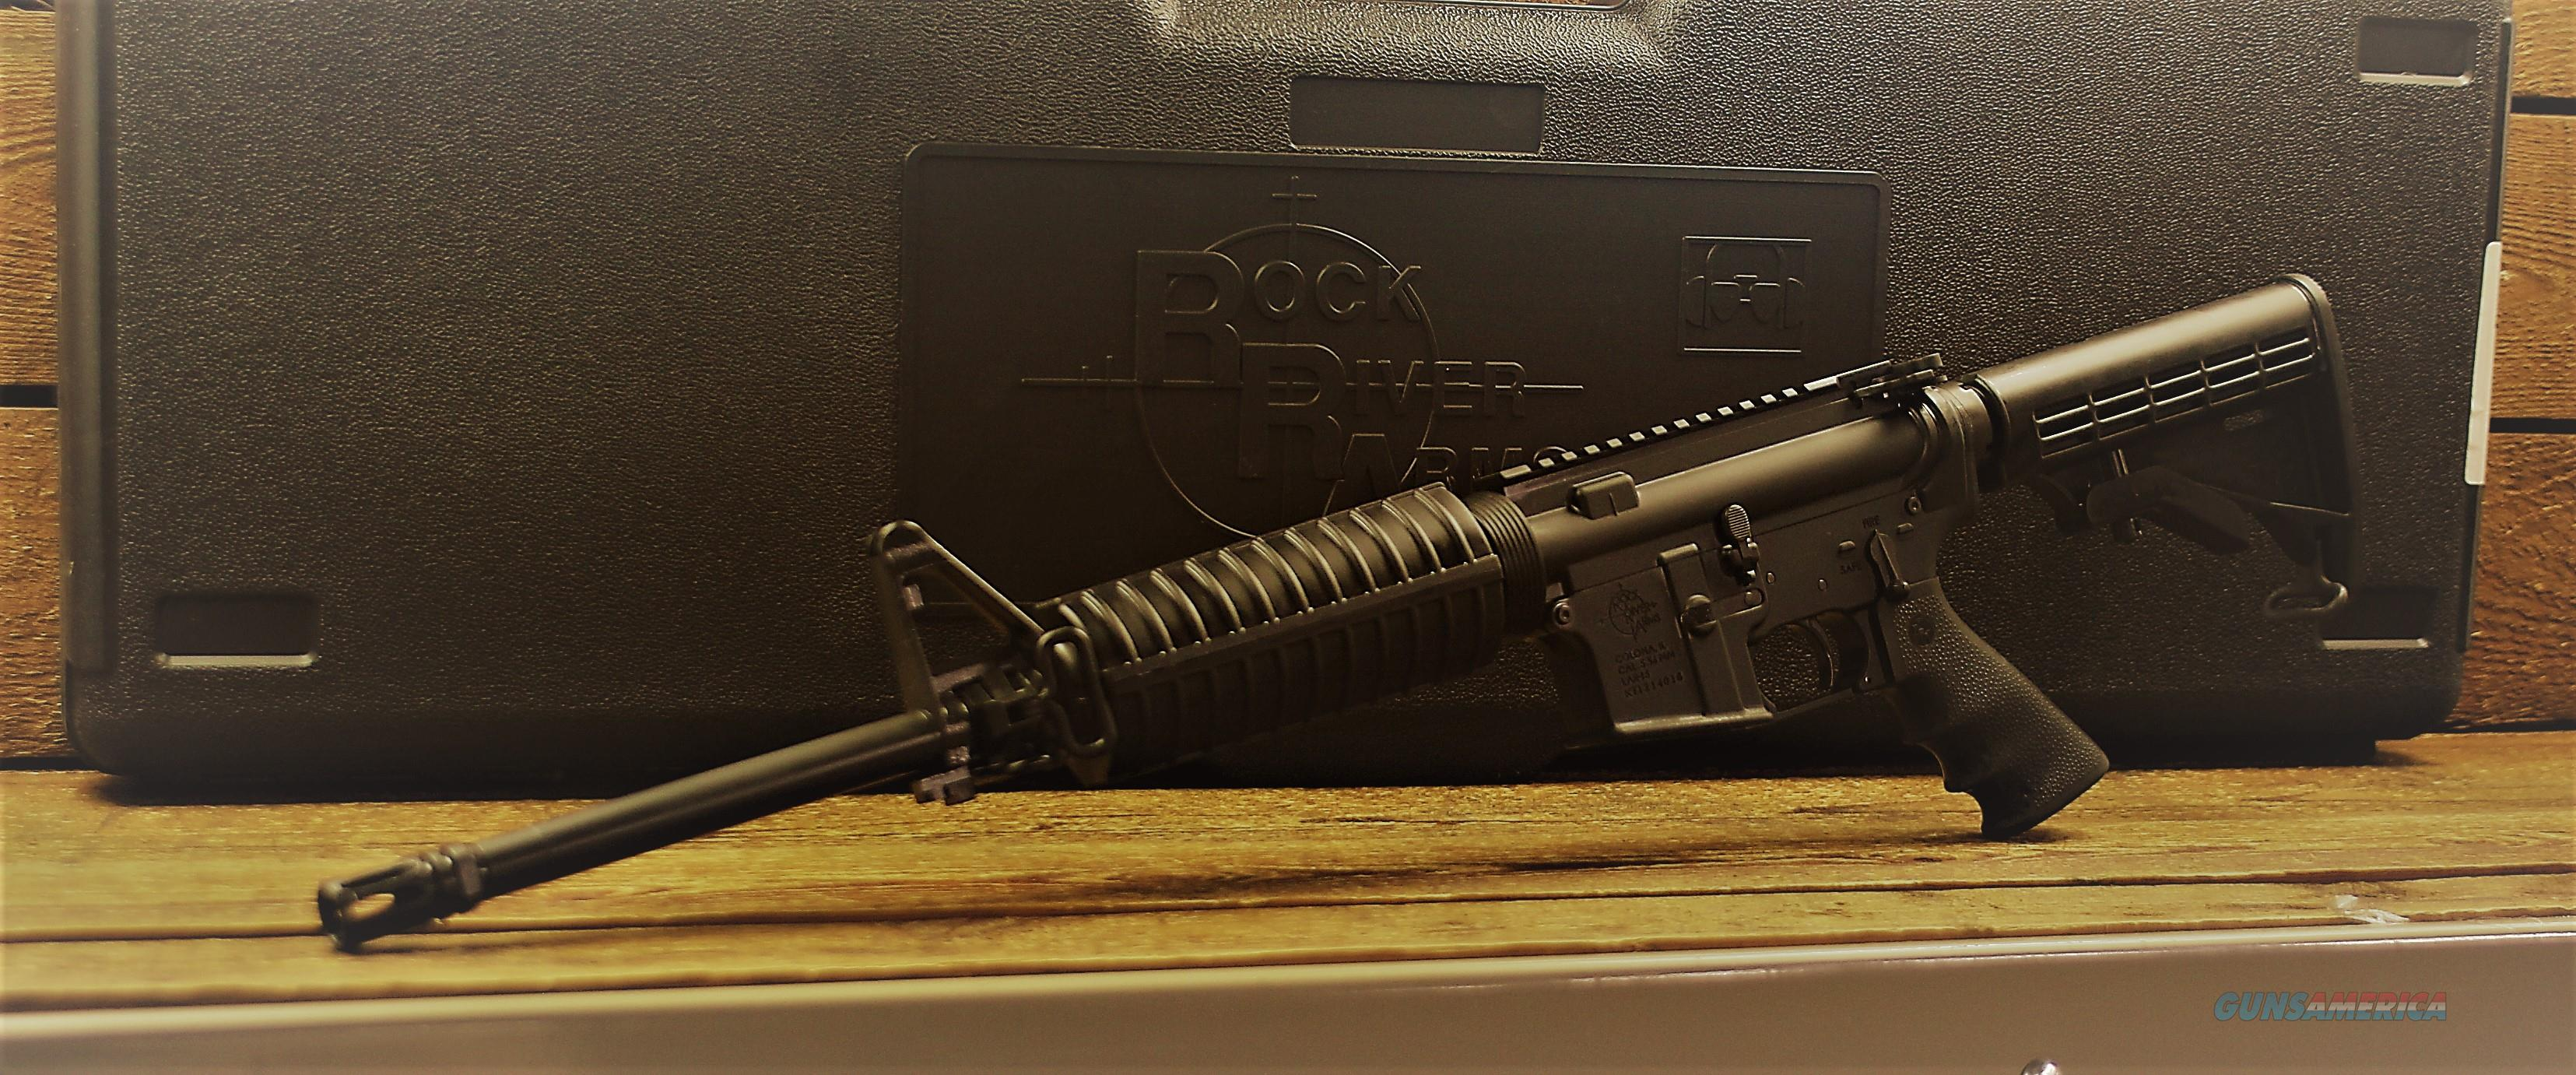 """$94 EASY PAY Rock River Arms Based in the Land of Lincoln LAR-15 was AWARDED ! DEA FBI Marshals Government Contract's M4 collapsible stock A4 Tactical AR-15 AR15 16"""" 5.56mm NATO Chrome Lined Barrel A2 Flash hider Polymer RRAAR1207  Guns > Rifles > Rock River Arms Rifles"""